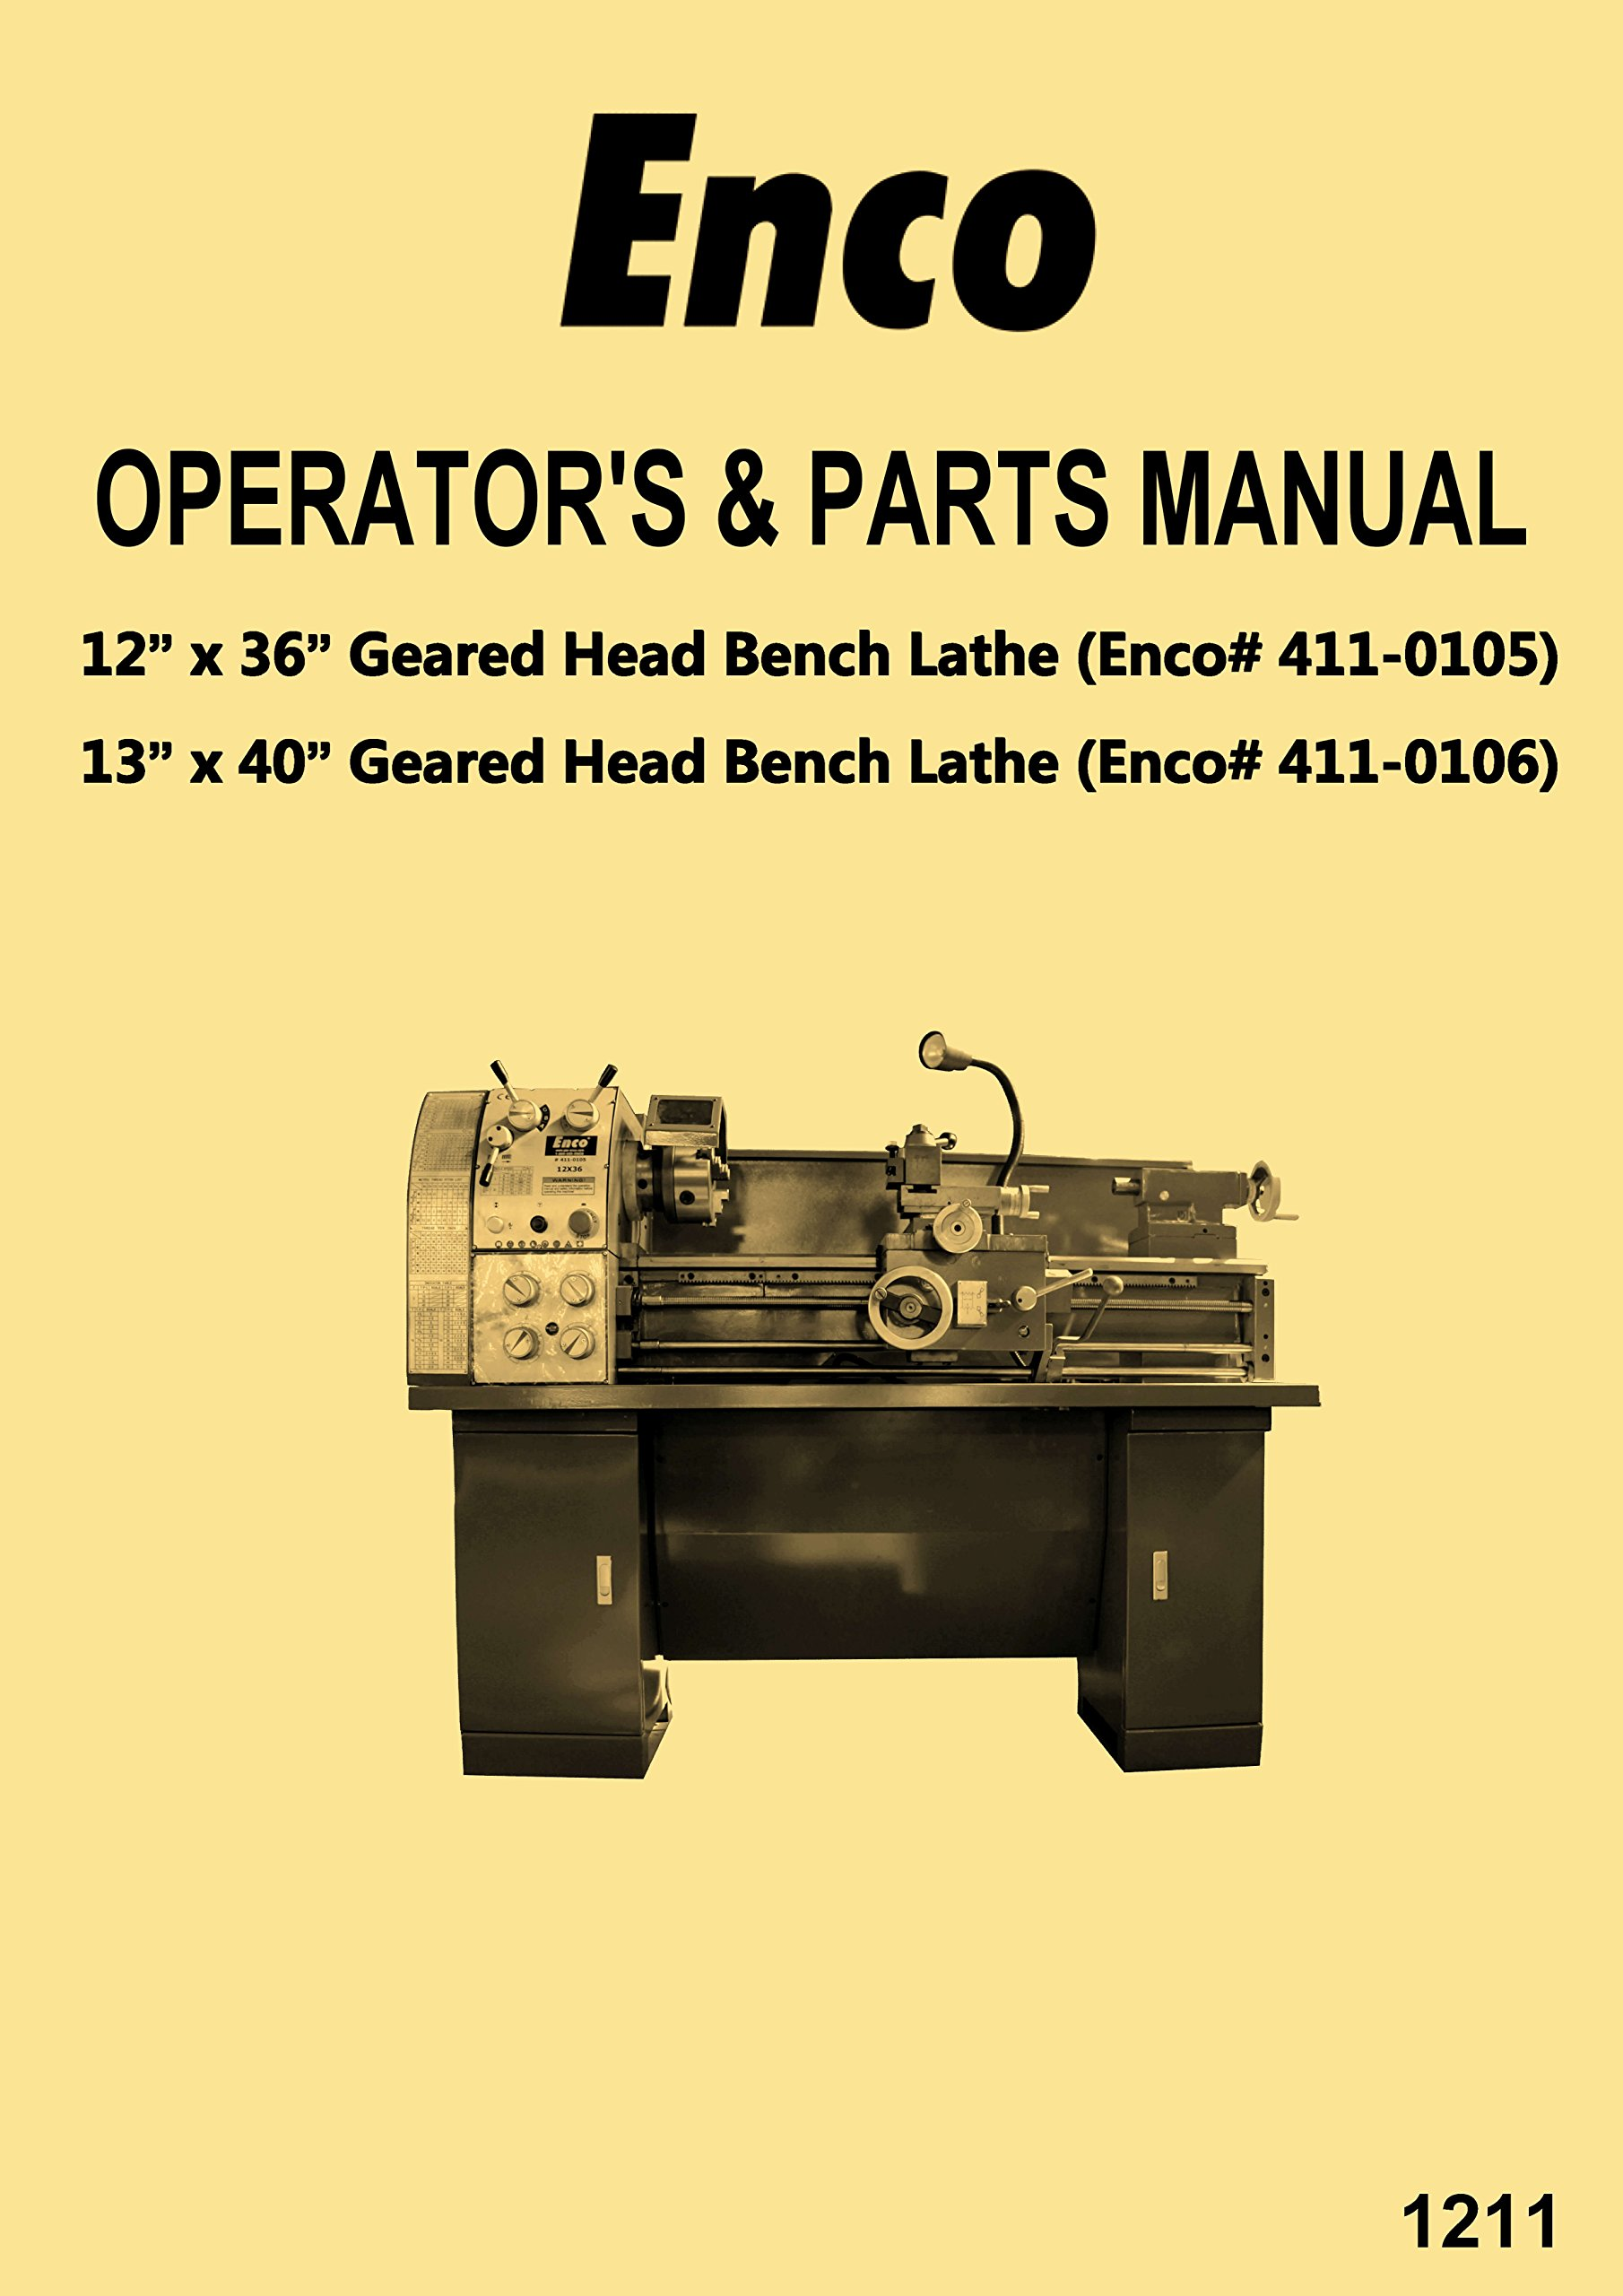 Enco-JET-Asian 1236 1340 Metal Lathes 411-0105 411-0106 Instructions  Operator's & Parts Manual: Misc.: Amazon.com: Books